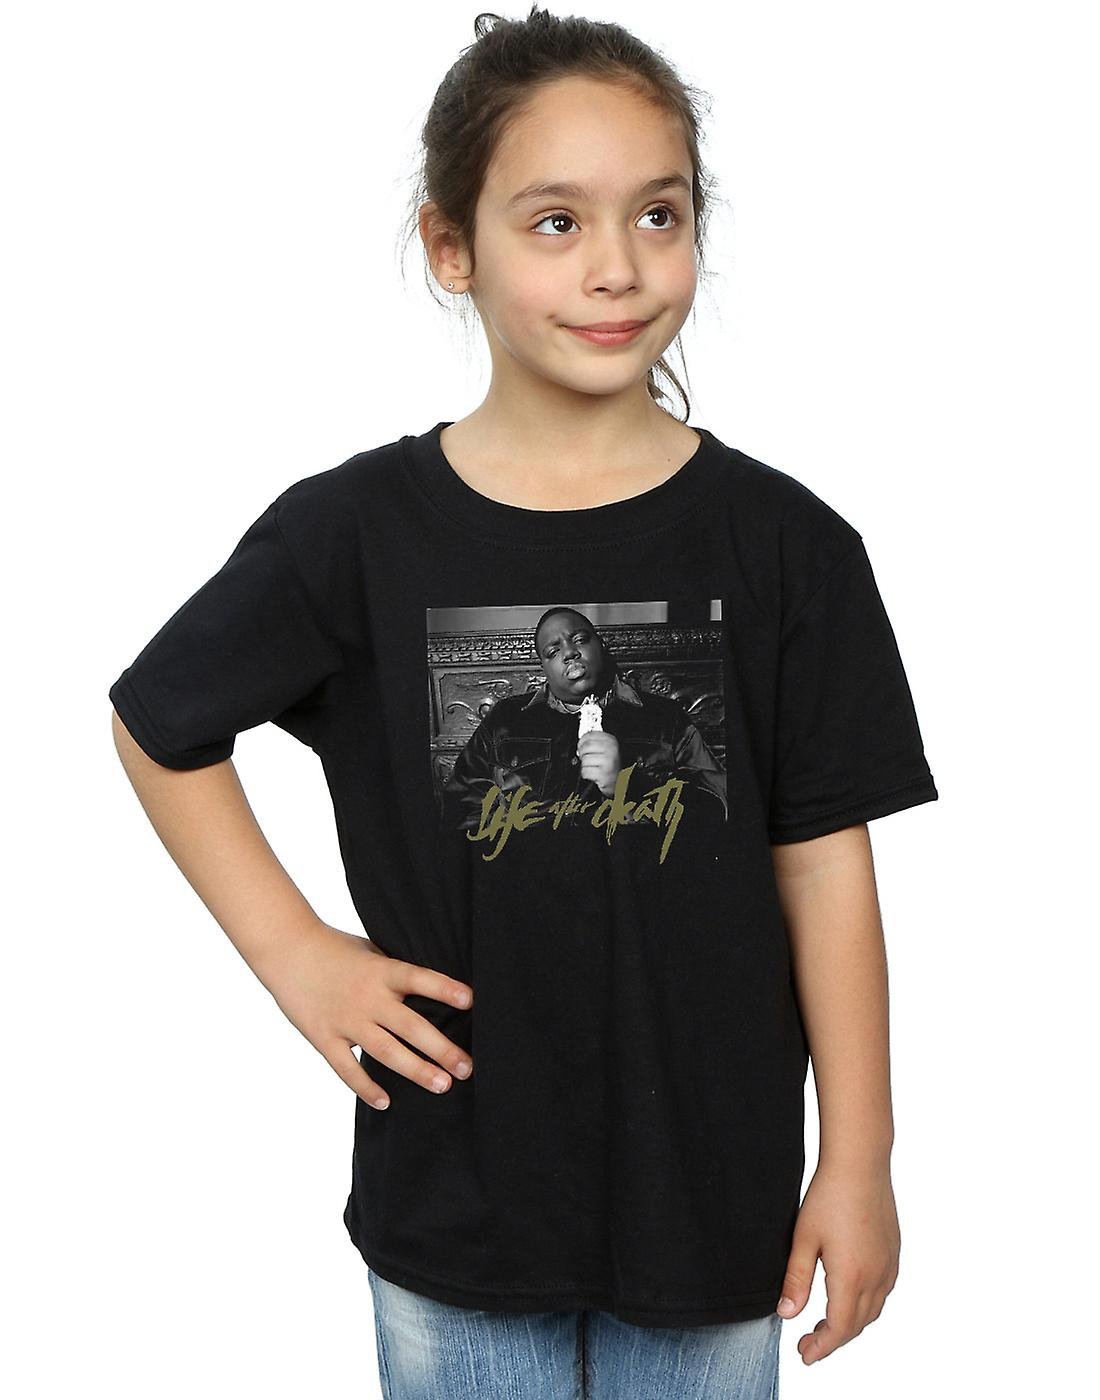 Notorious BIG Girls Life After Death Photo T-Shirt